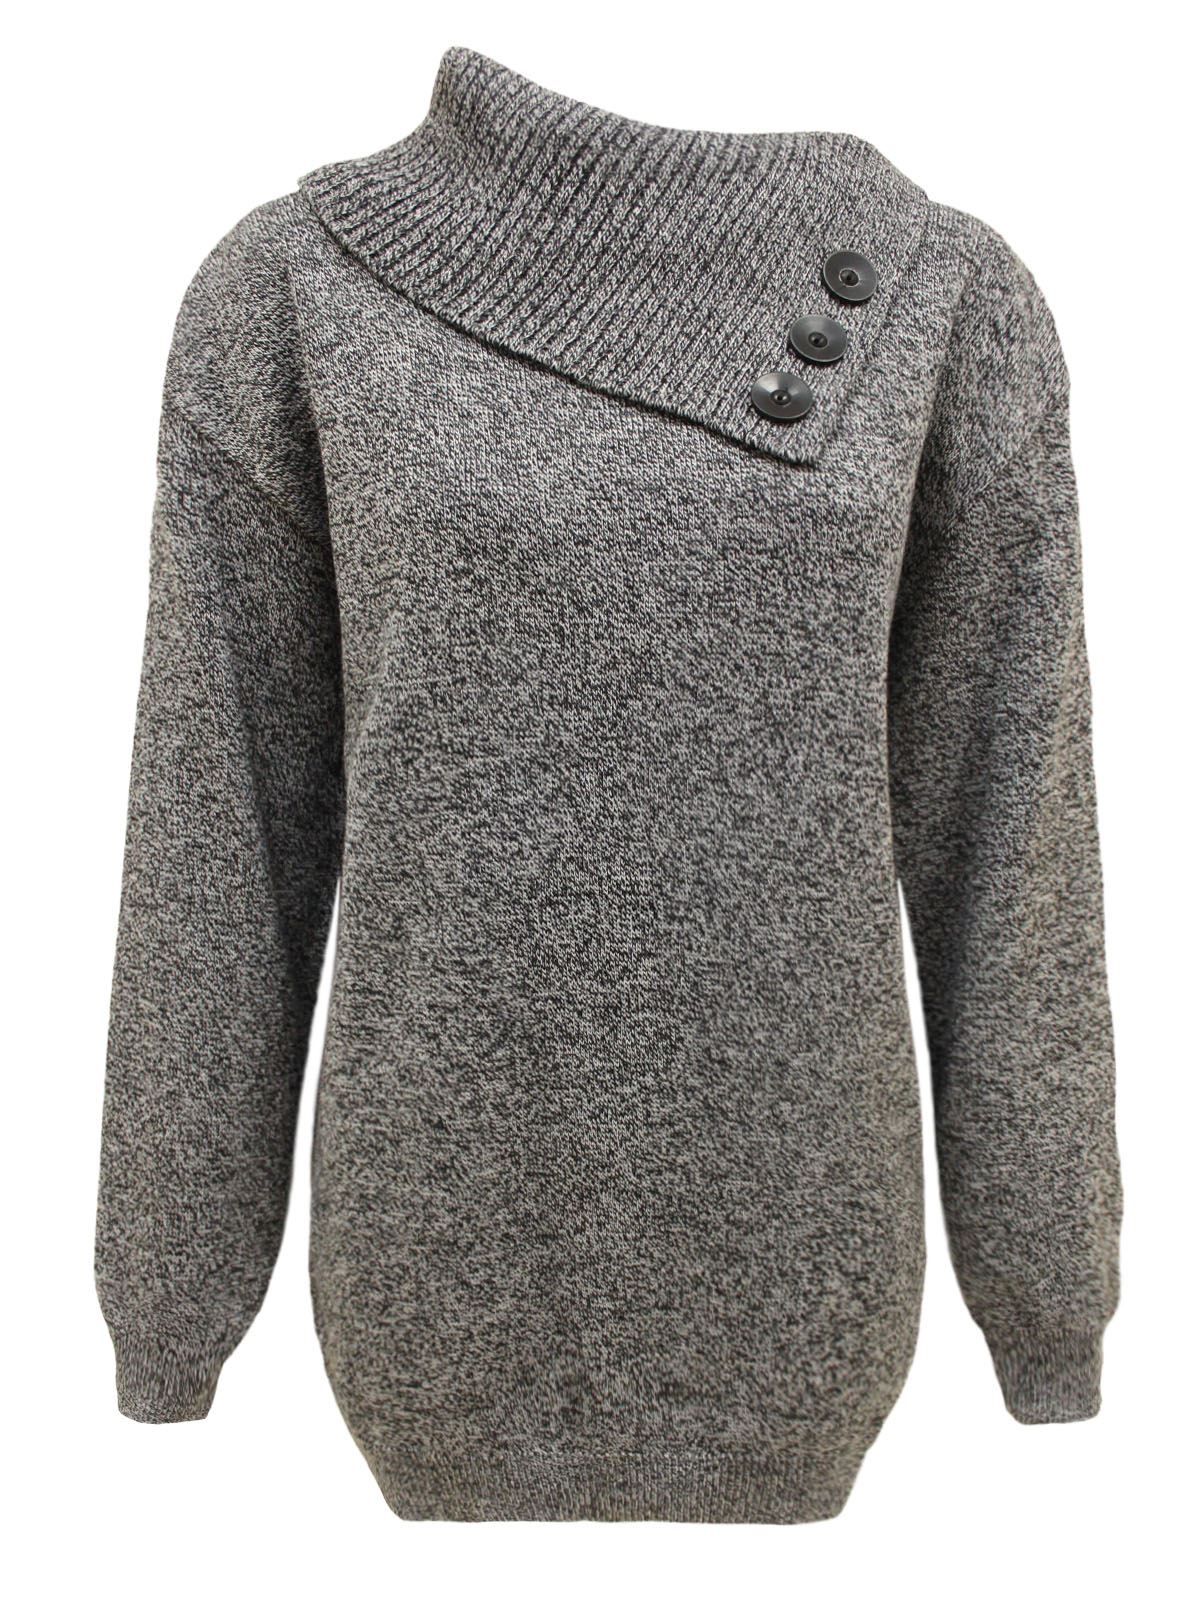 Womens Ladies Knitted Jumper 3 Buttons Polo Neck Pullover ...